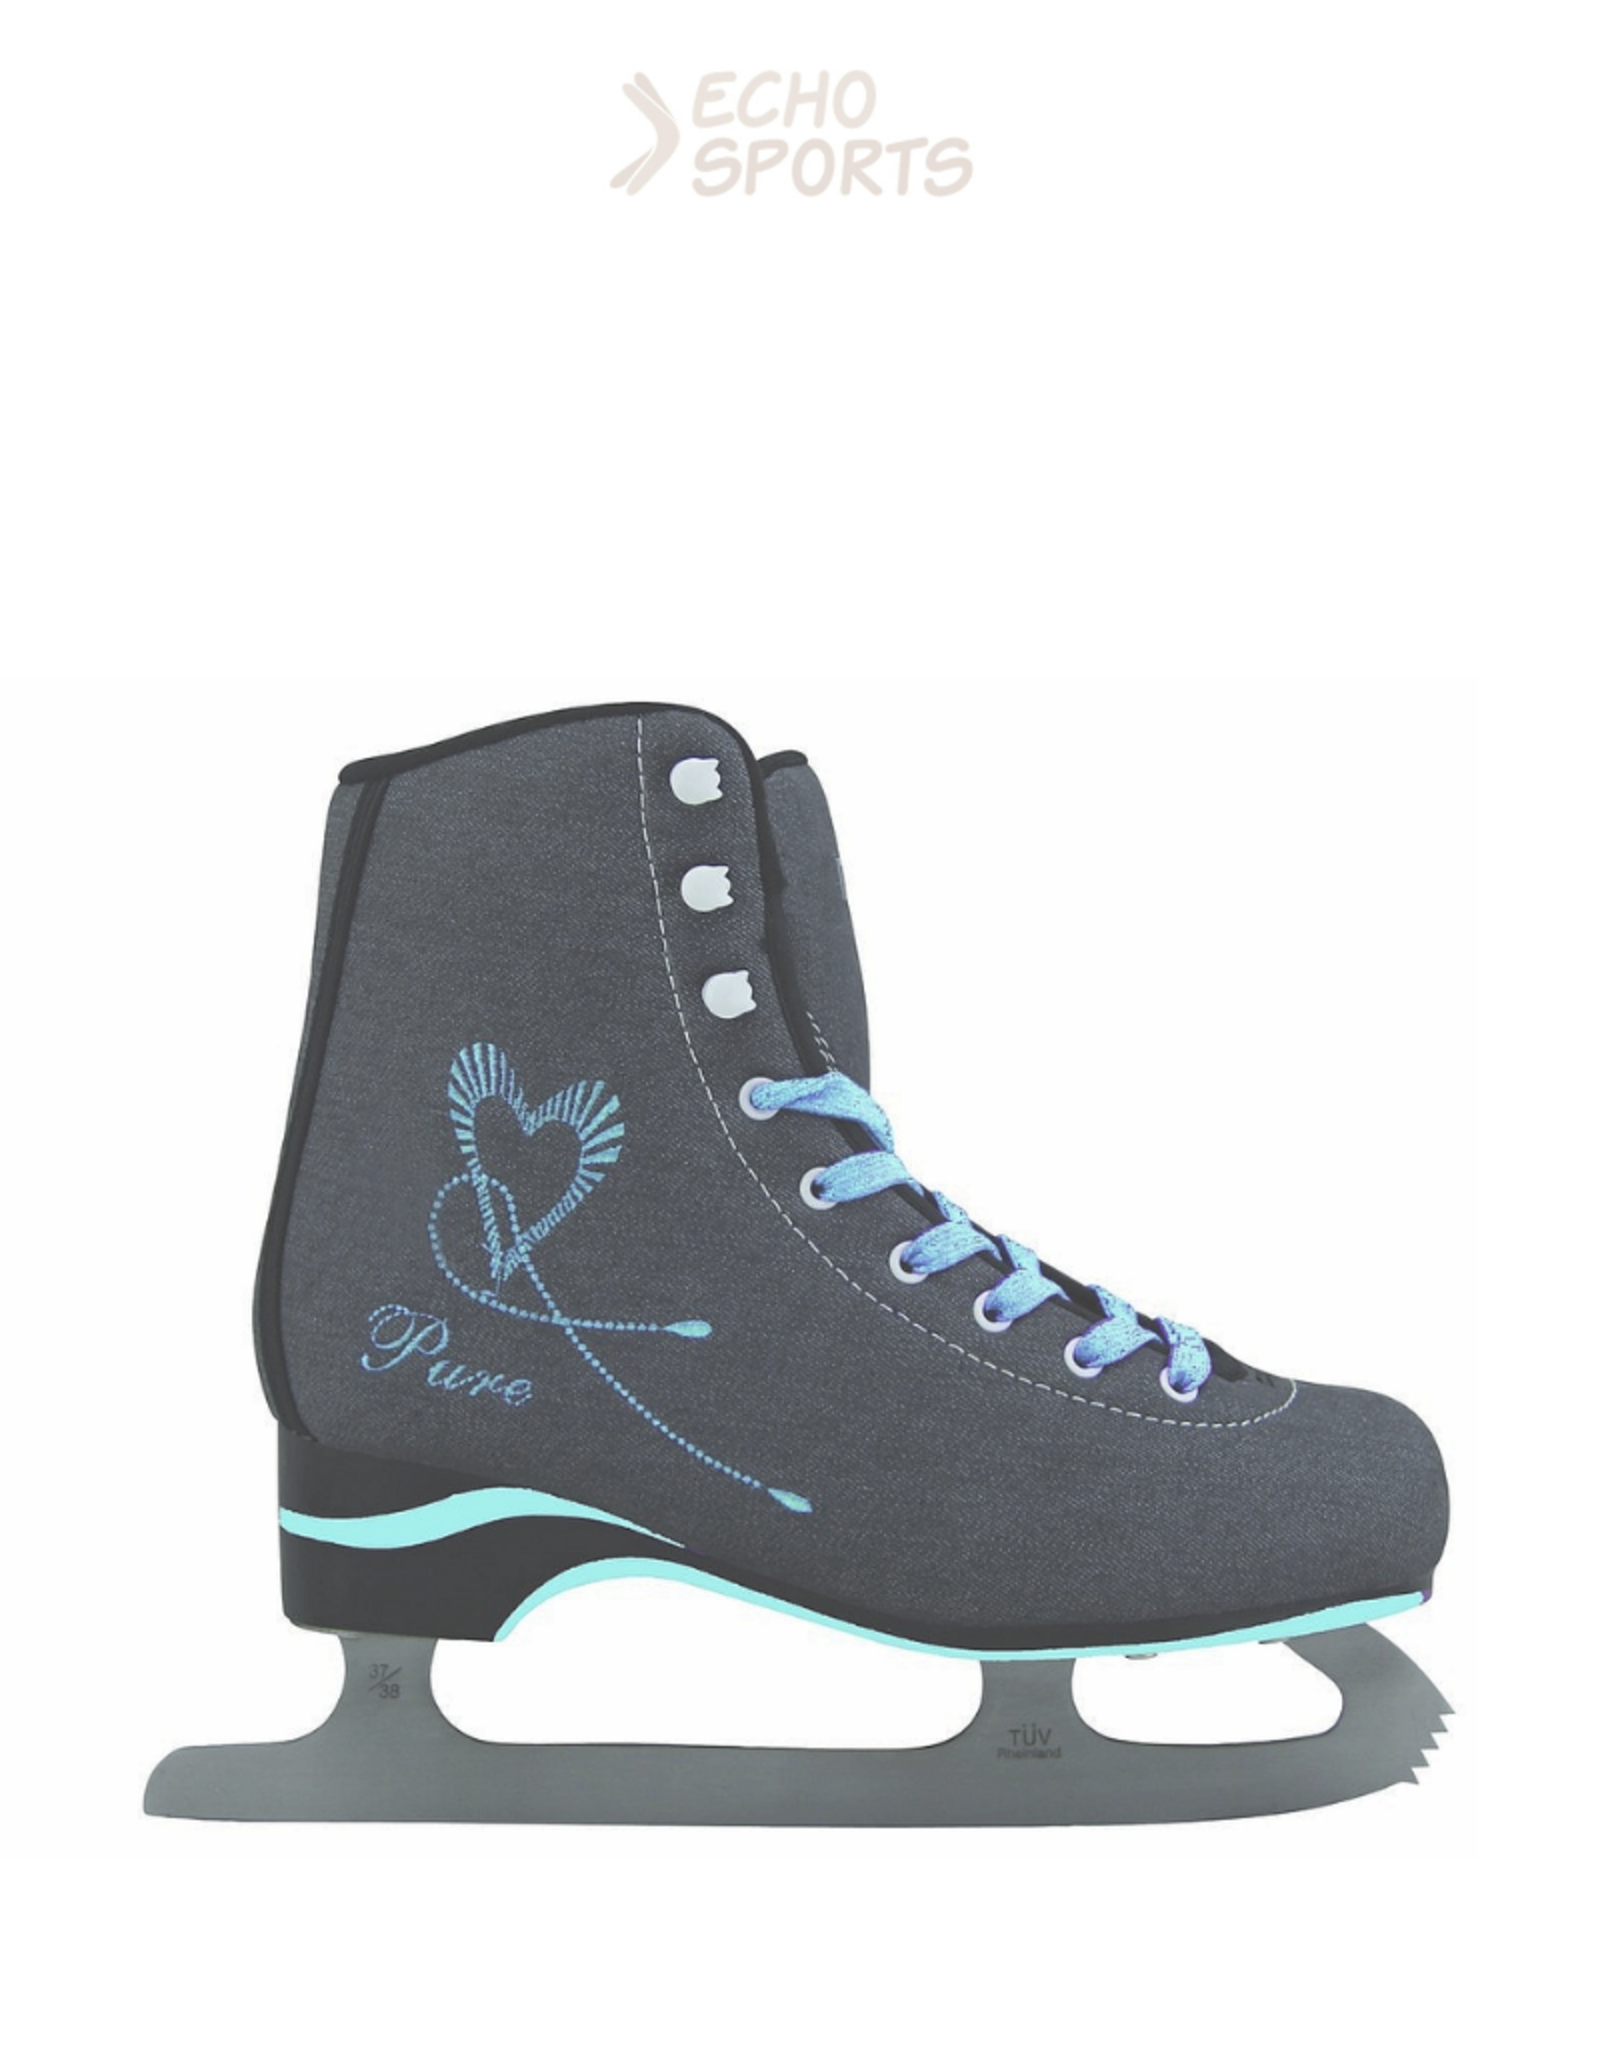 Patin à glace Softmax S-736 femme